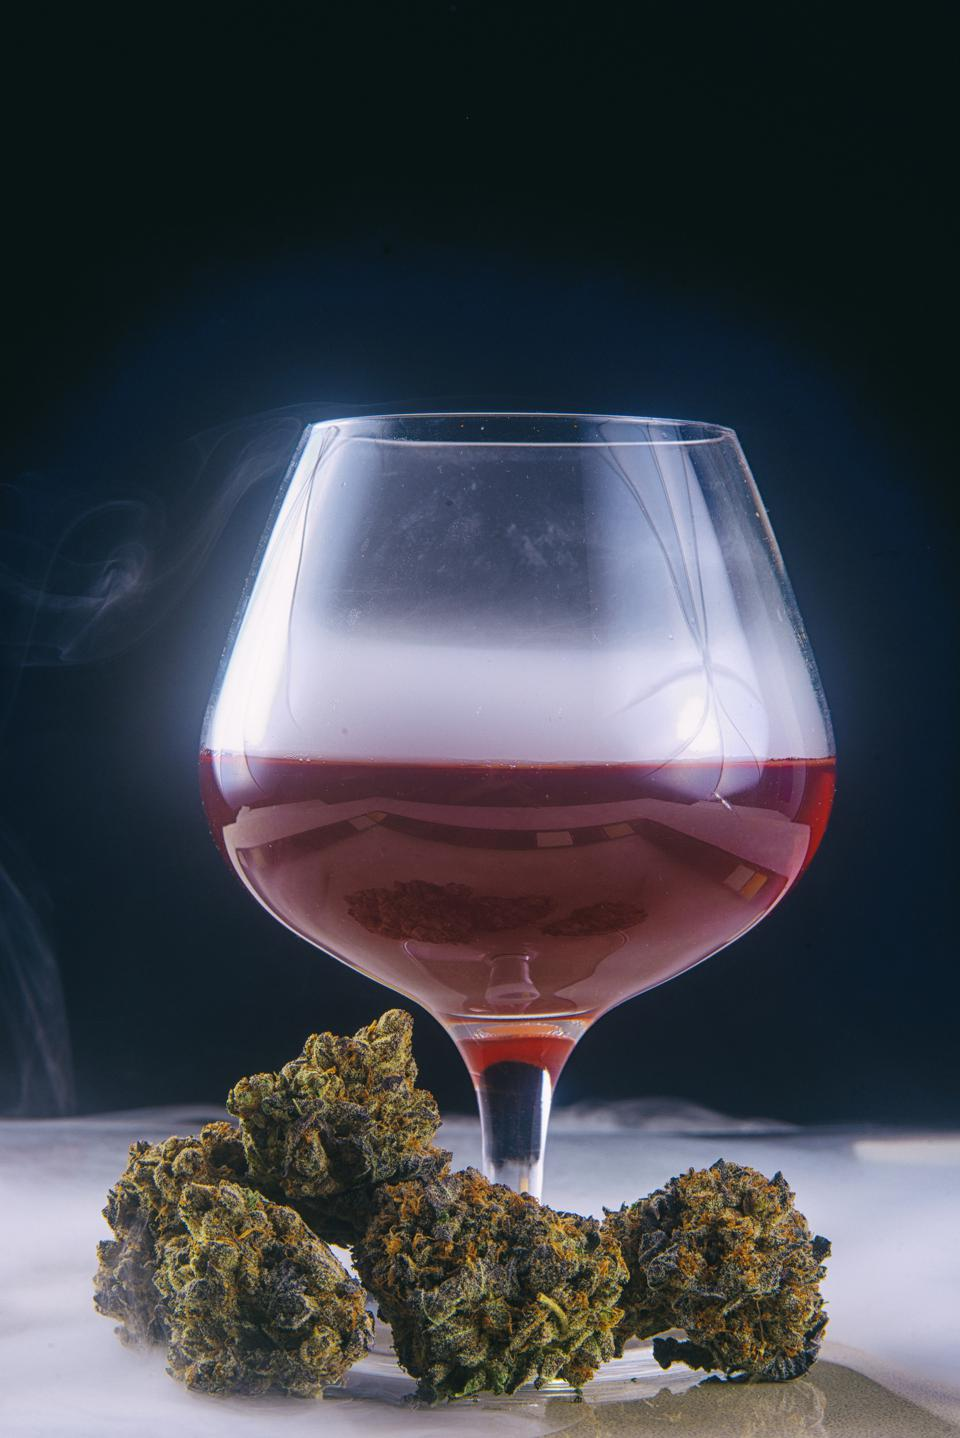 Dried cannabis buds (Grandaddy Purple strain) with glass of red wine isolated on black blackground.